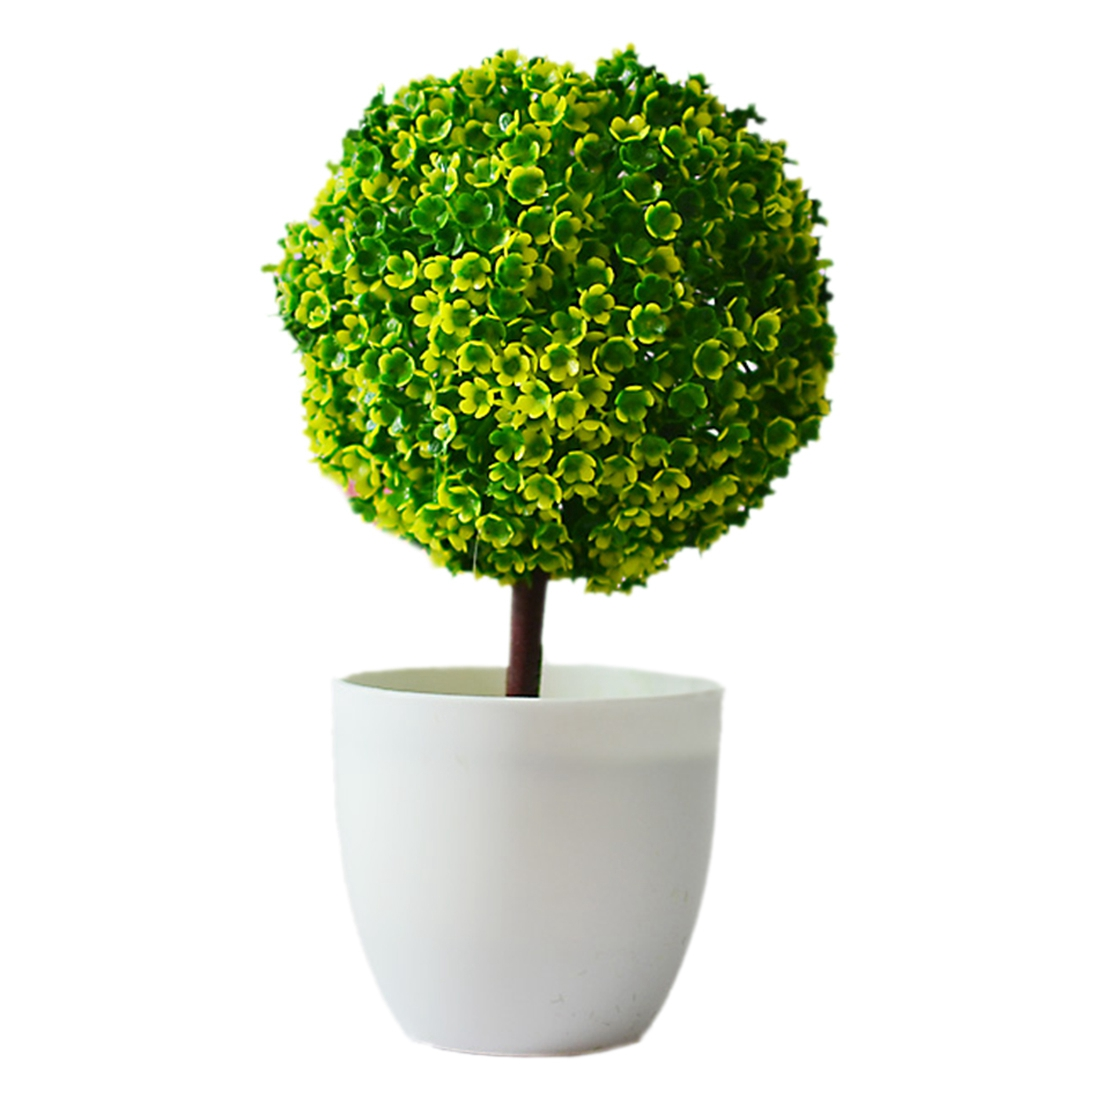 Compra planta artificial bola online al por mayor de china - Plantas artificiales decorativas ...